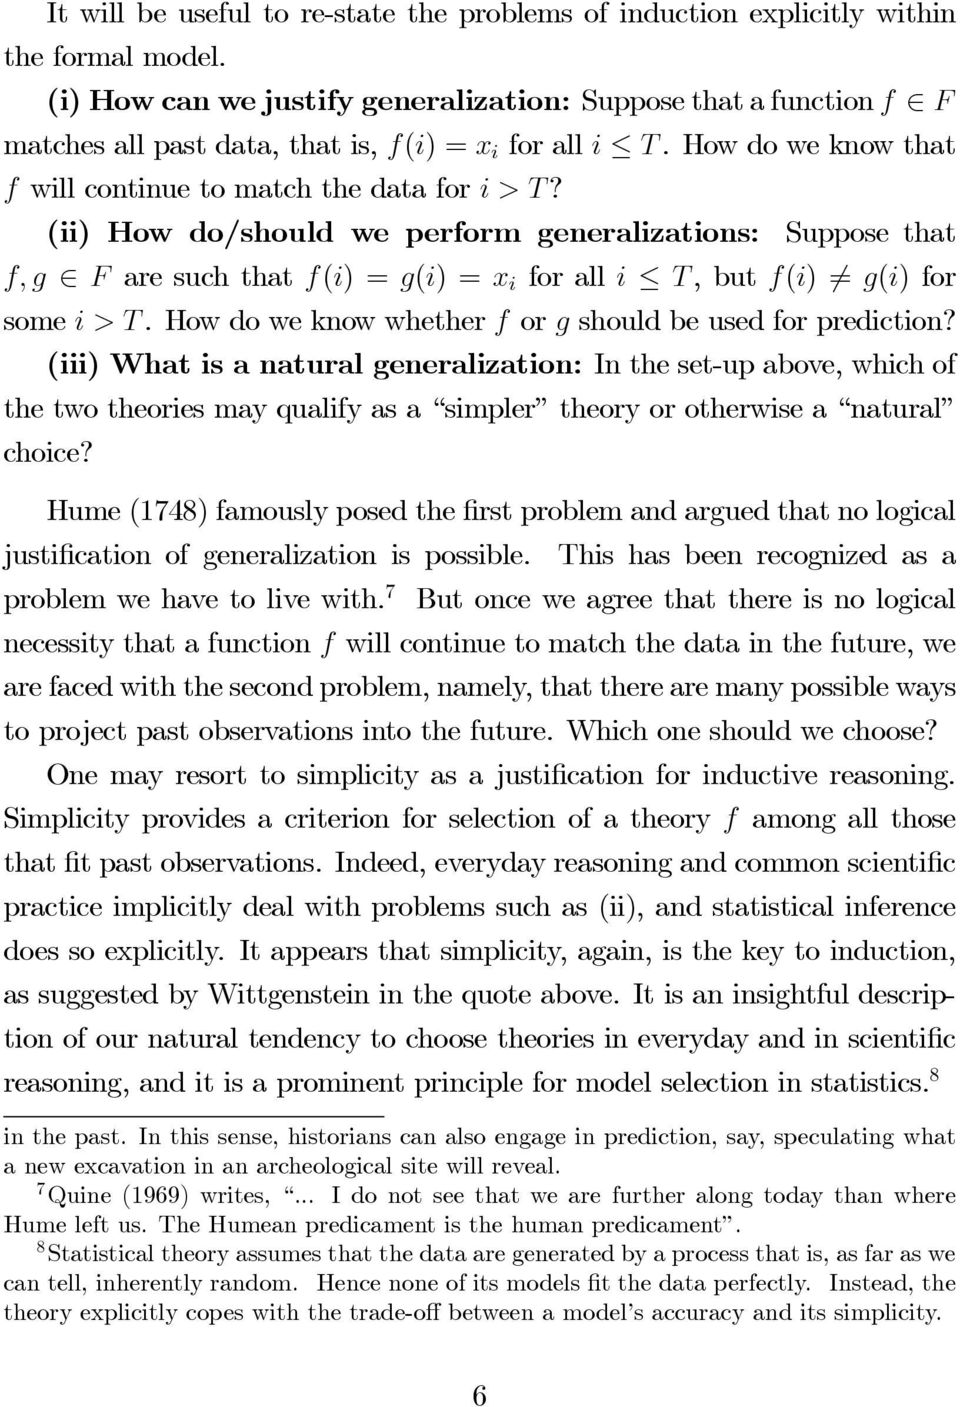 (ii) How do/should we perform generalizations: Suppose that f,g F are such that f(i) =g(i) =x i for all i T,butf(i) 6= g(i) for some i>t. How do we know whether f or g should be used for prediction?